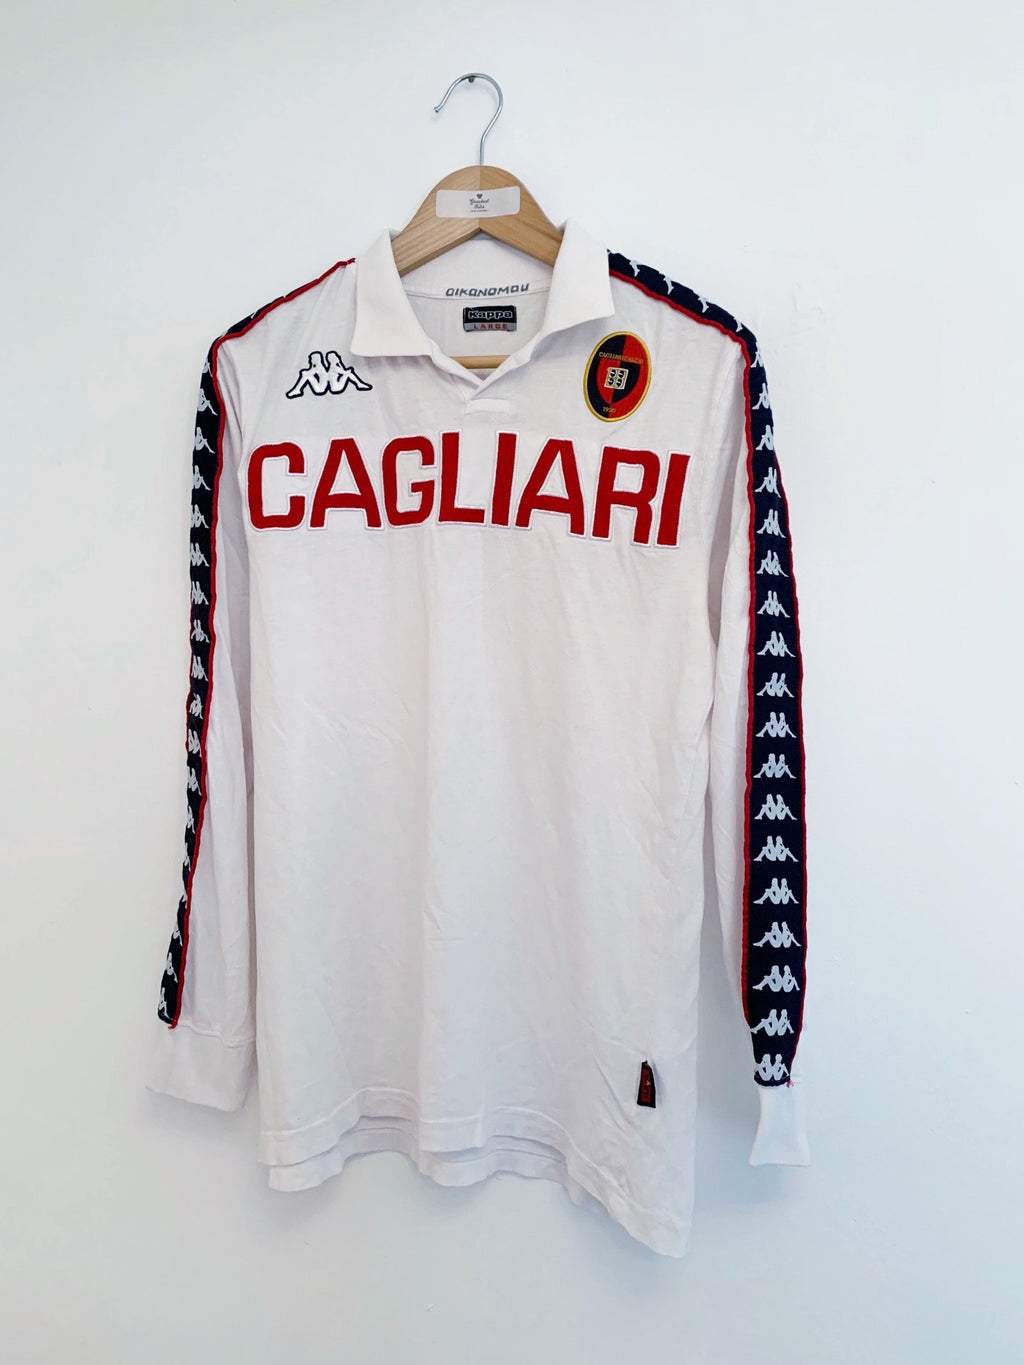 2013/14 Cagliari *Player Issue* Training L/S Shirt (L) 9/10